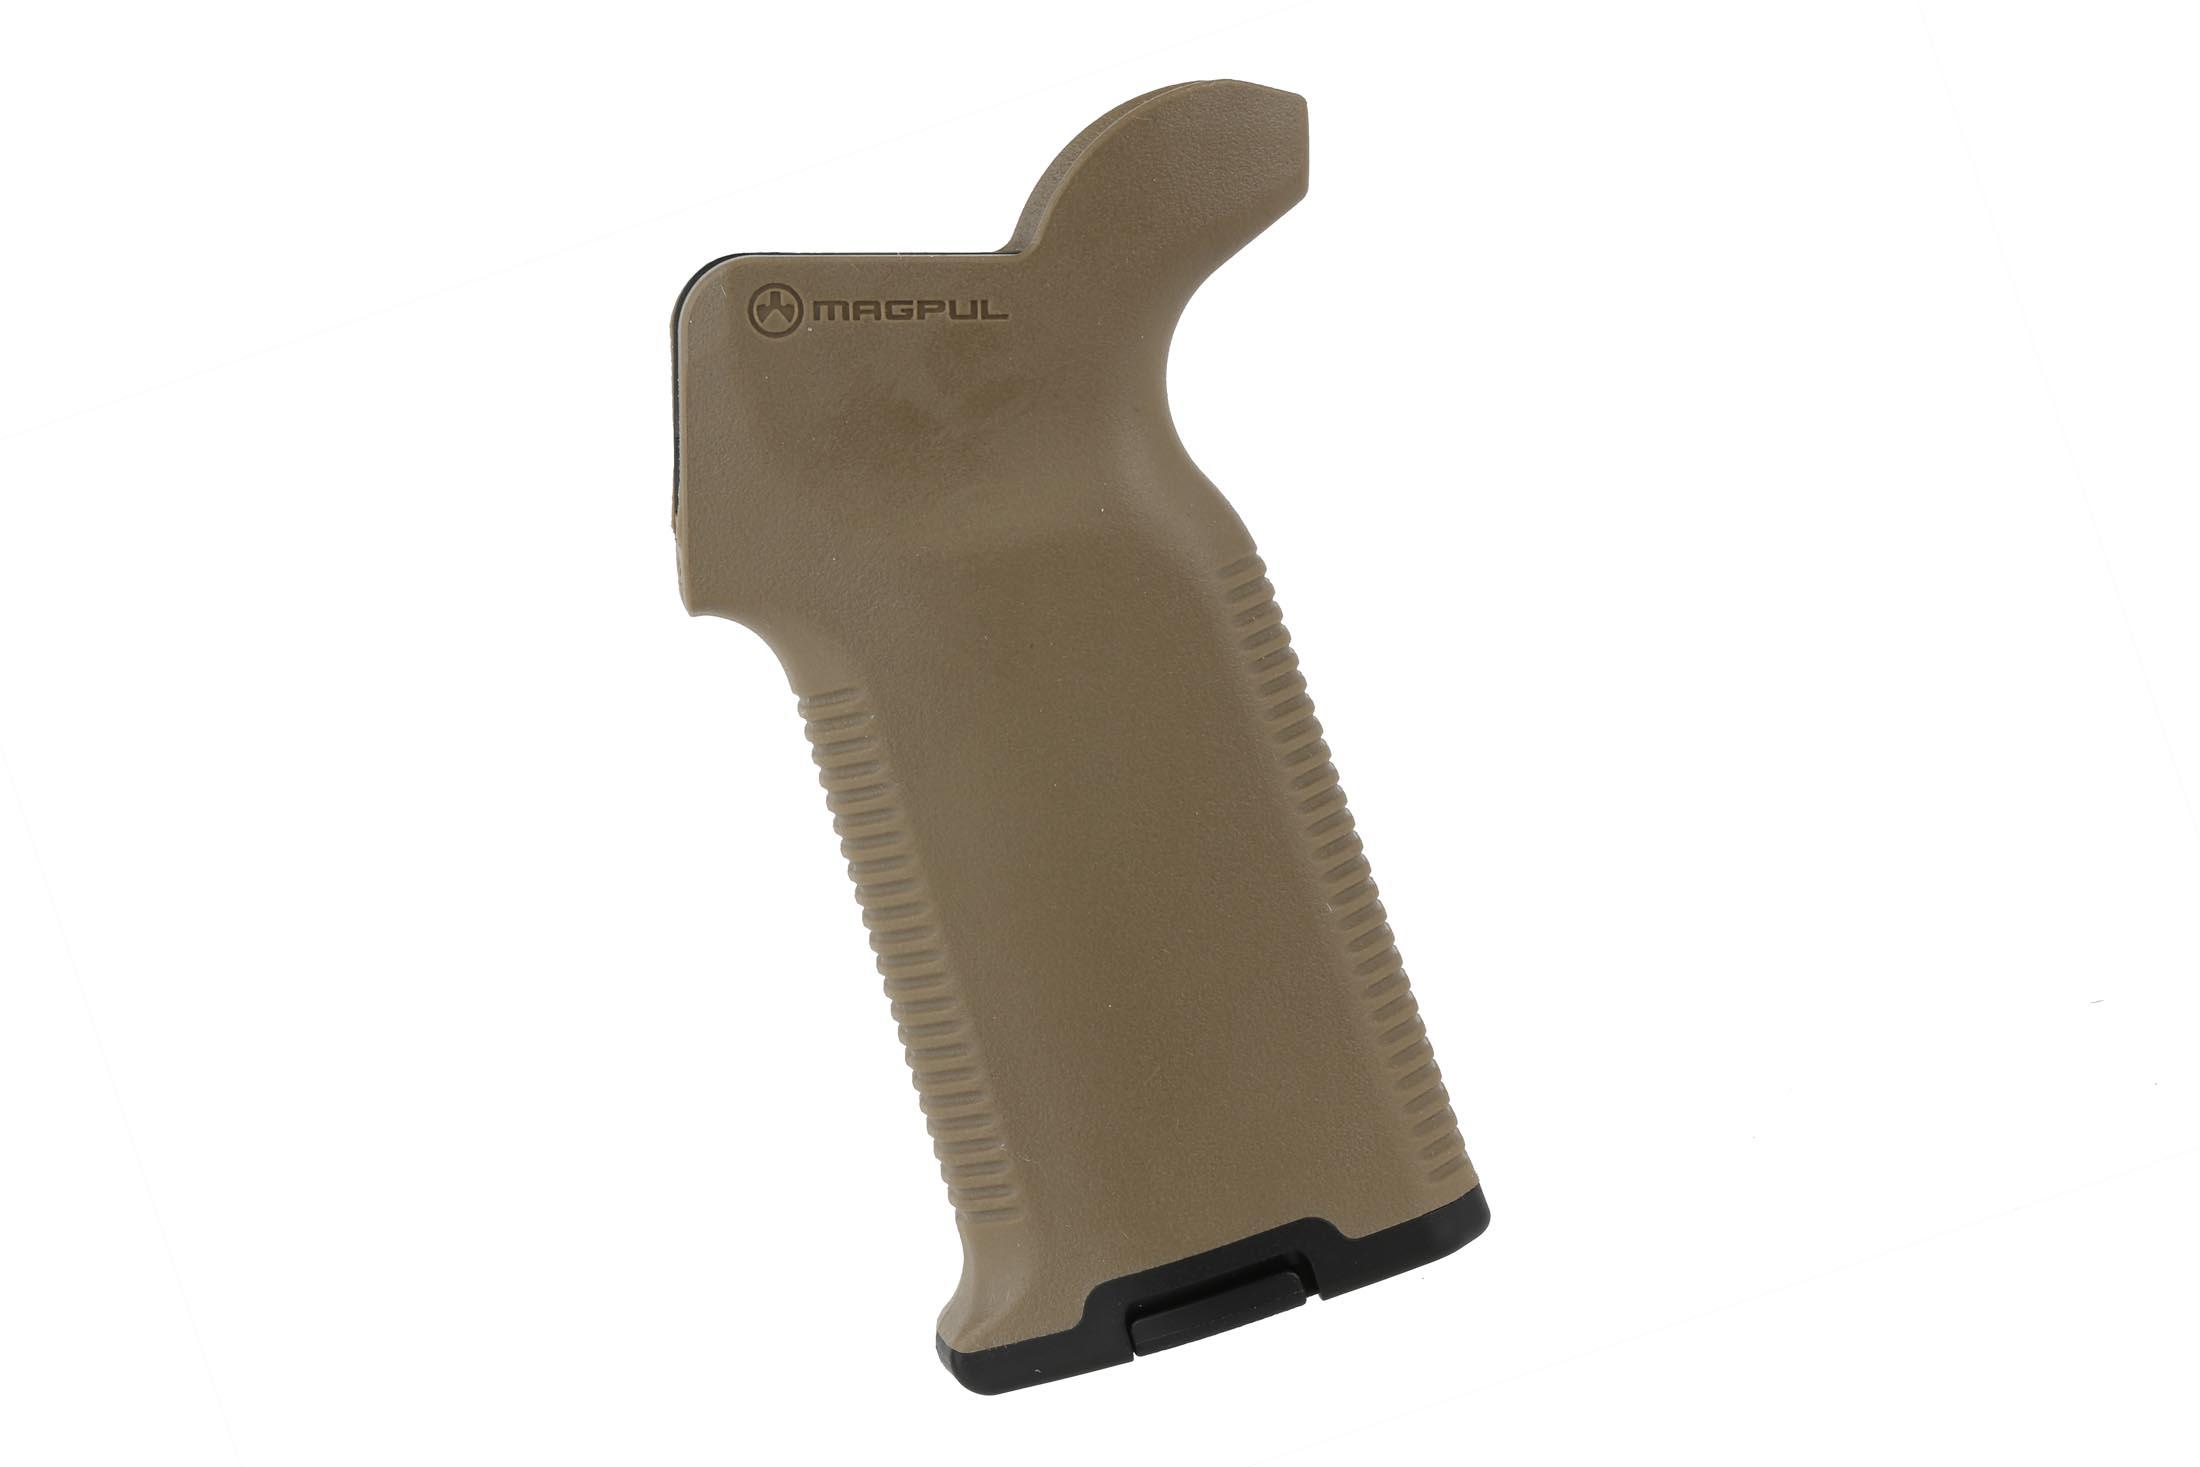 The Magpul MOE K2+ FDE ar15 pistol grip features a storage container for holding batteries or oil